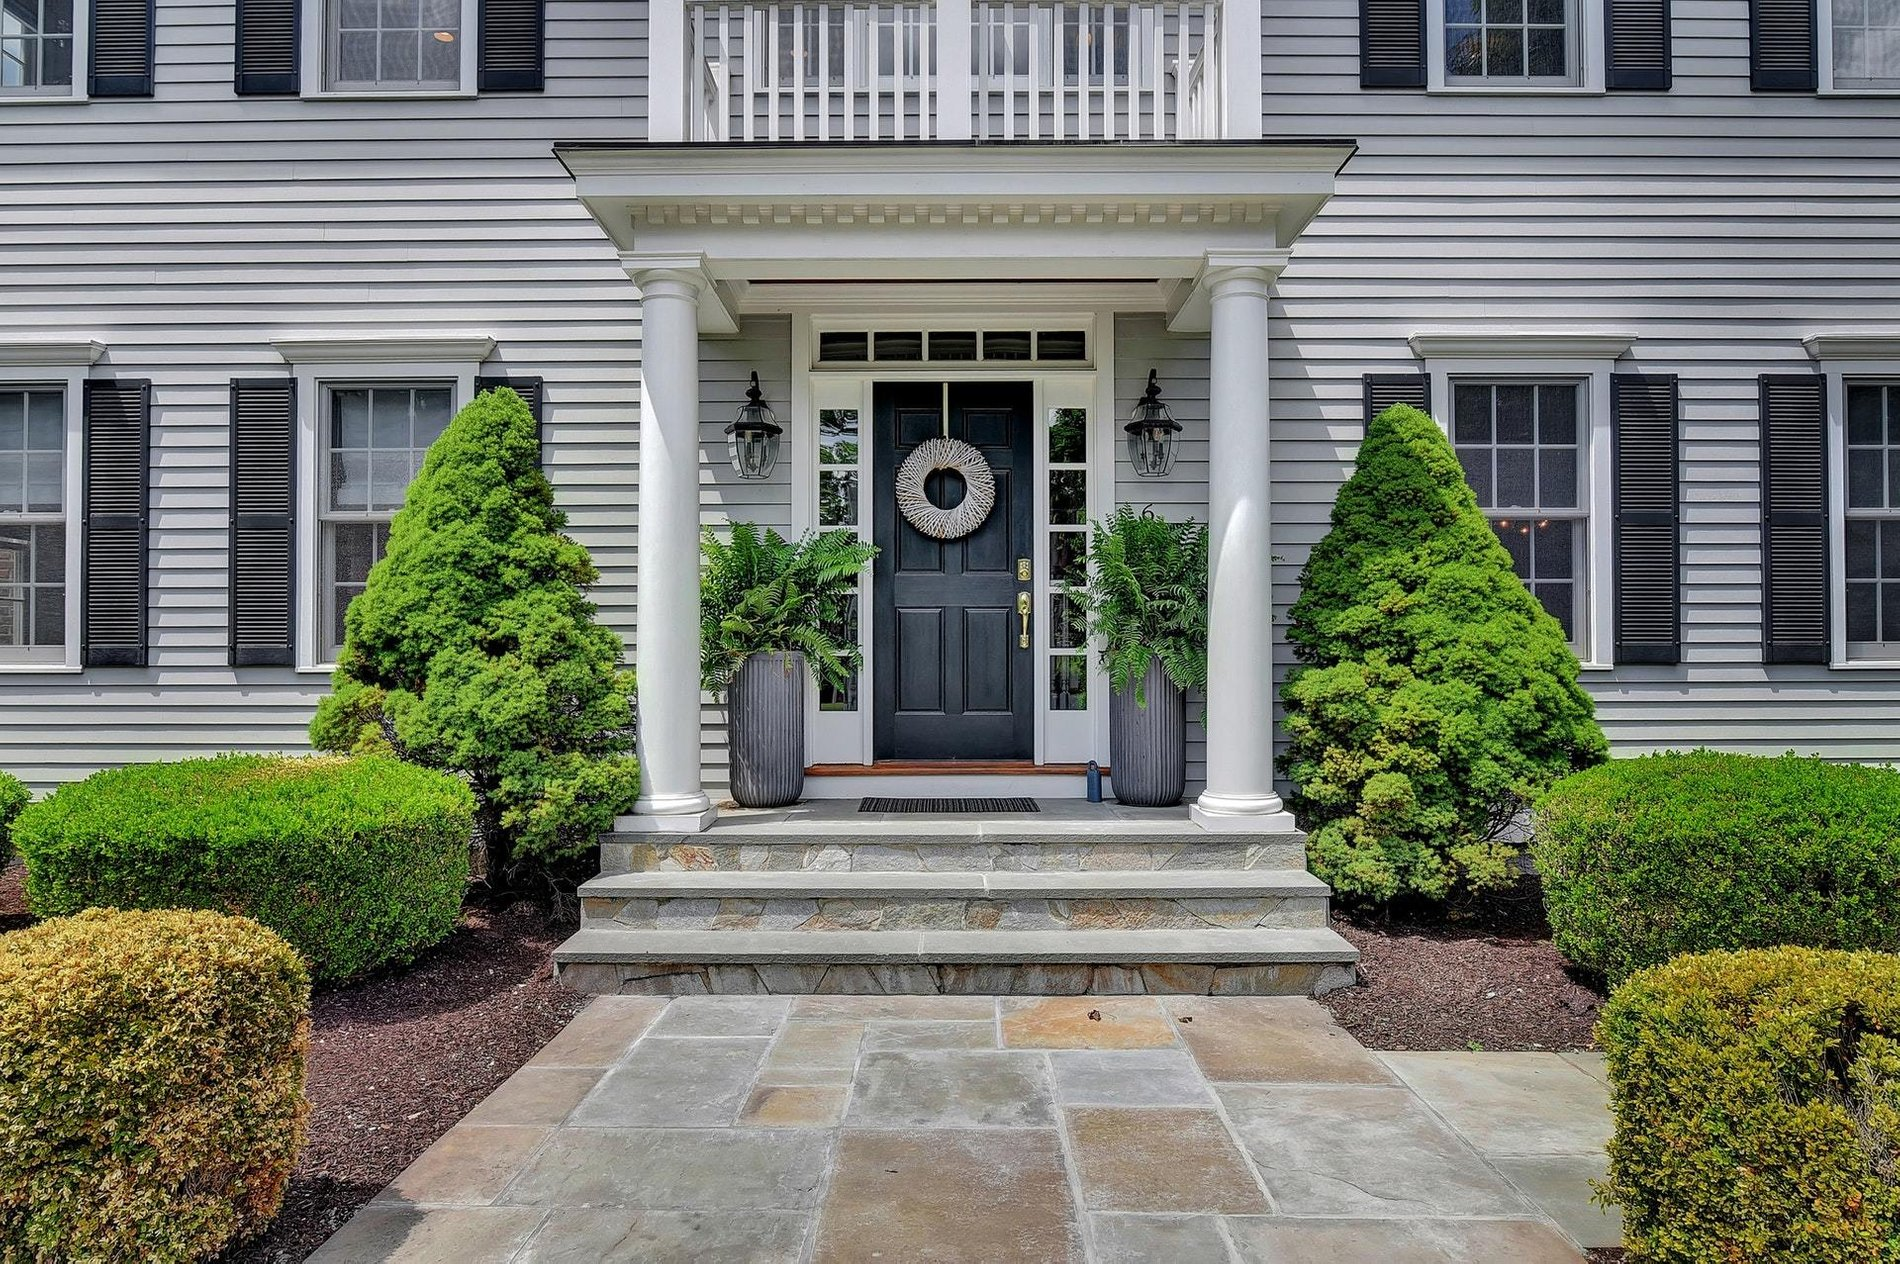 Classic portico design with a flat roof, round columns, railings and lots of trim and moldings. portico design ideas.